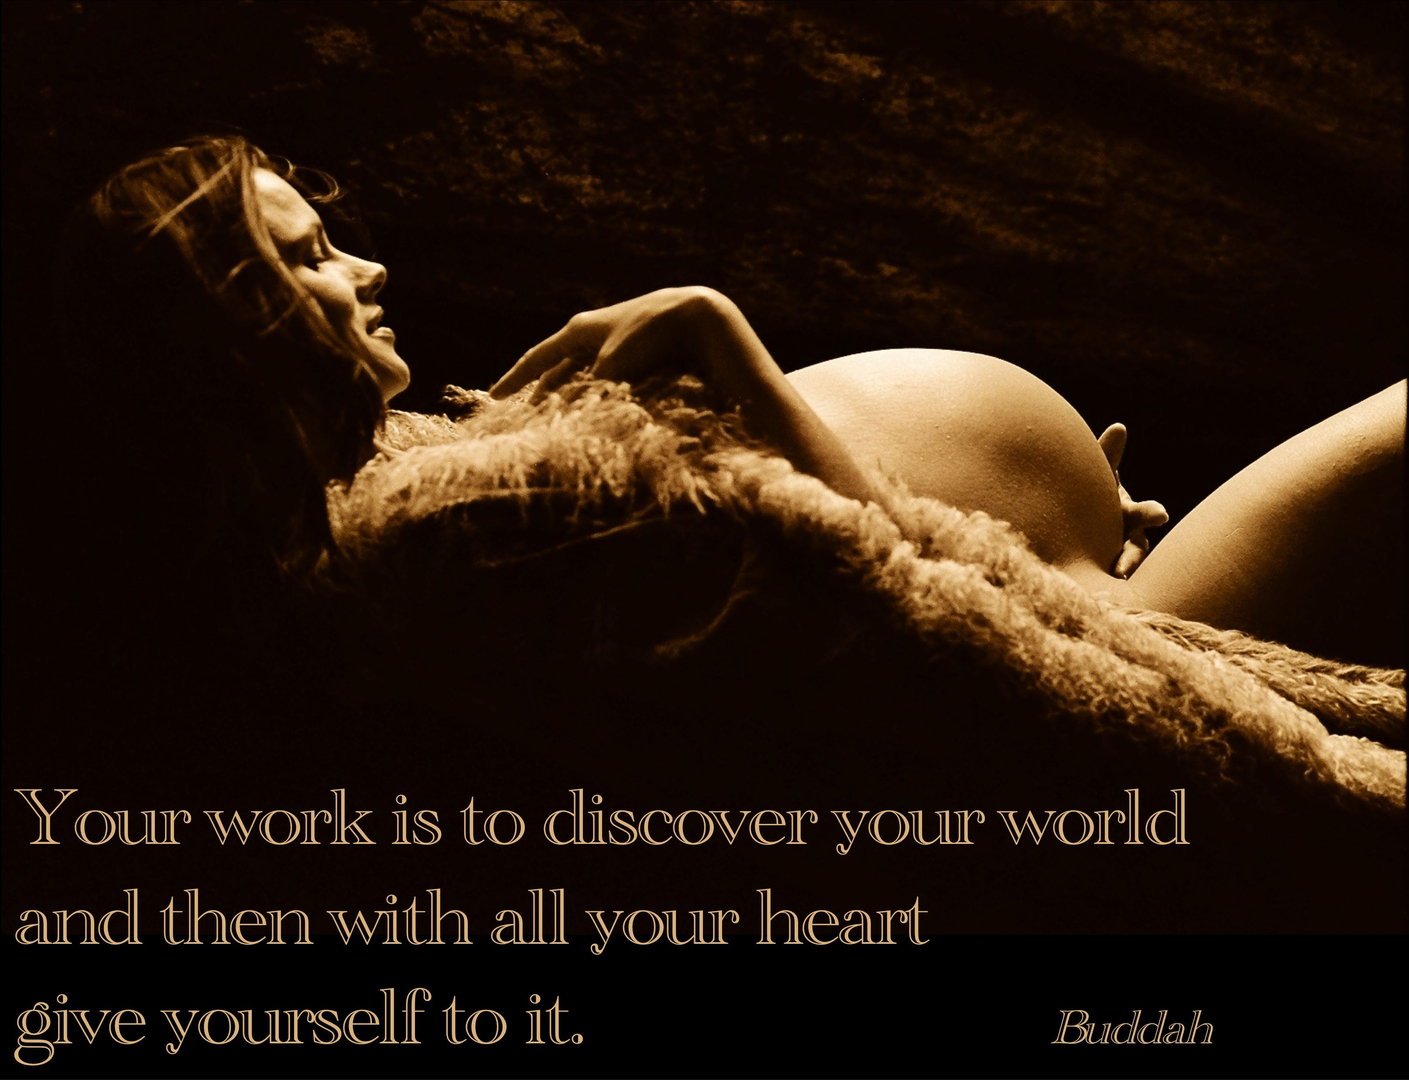 Kristen Eykel, Physical Training, Meditation, Birth, Doula, Becoming a mother